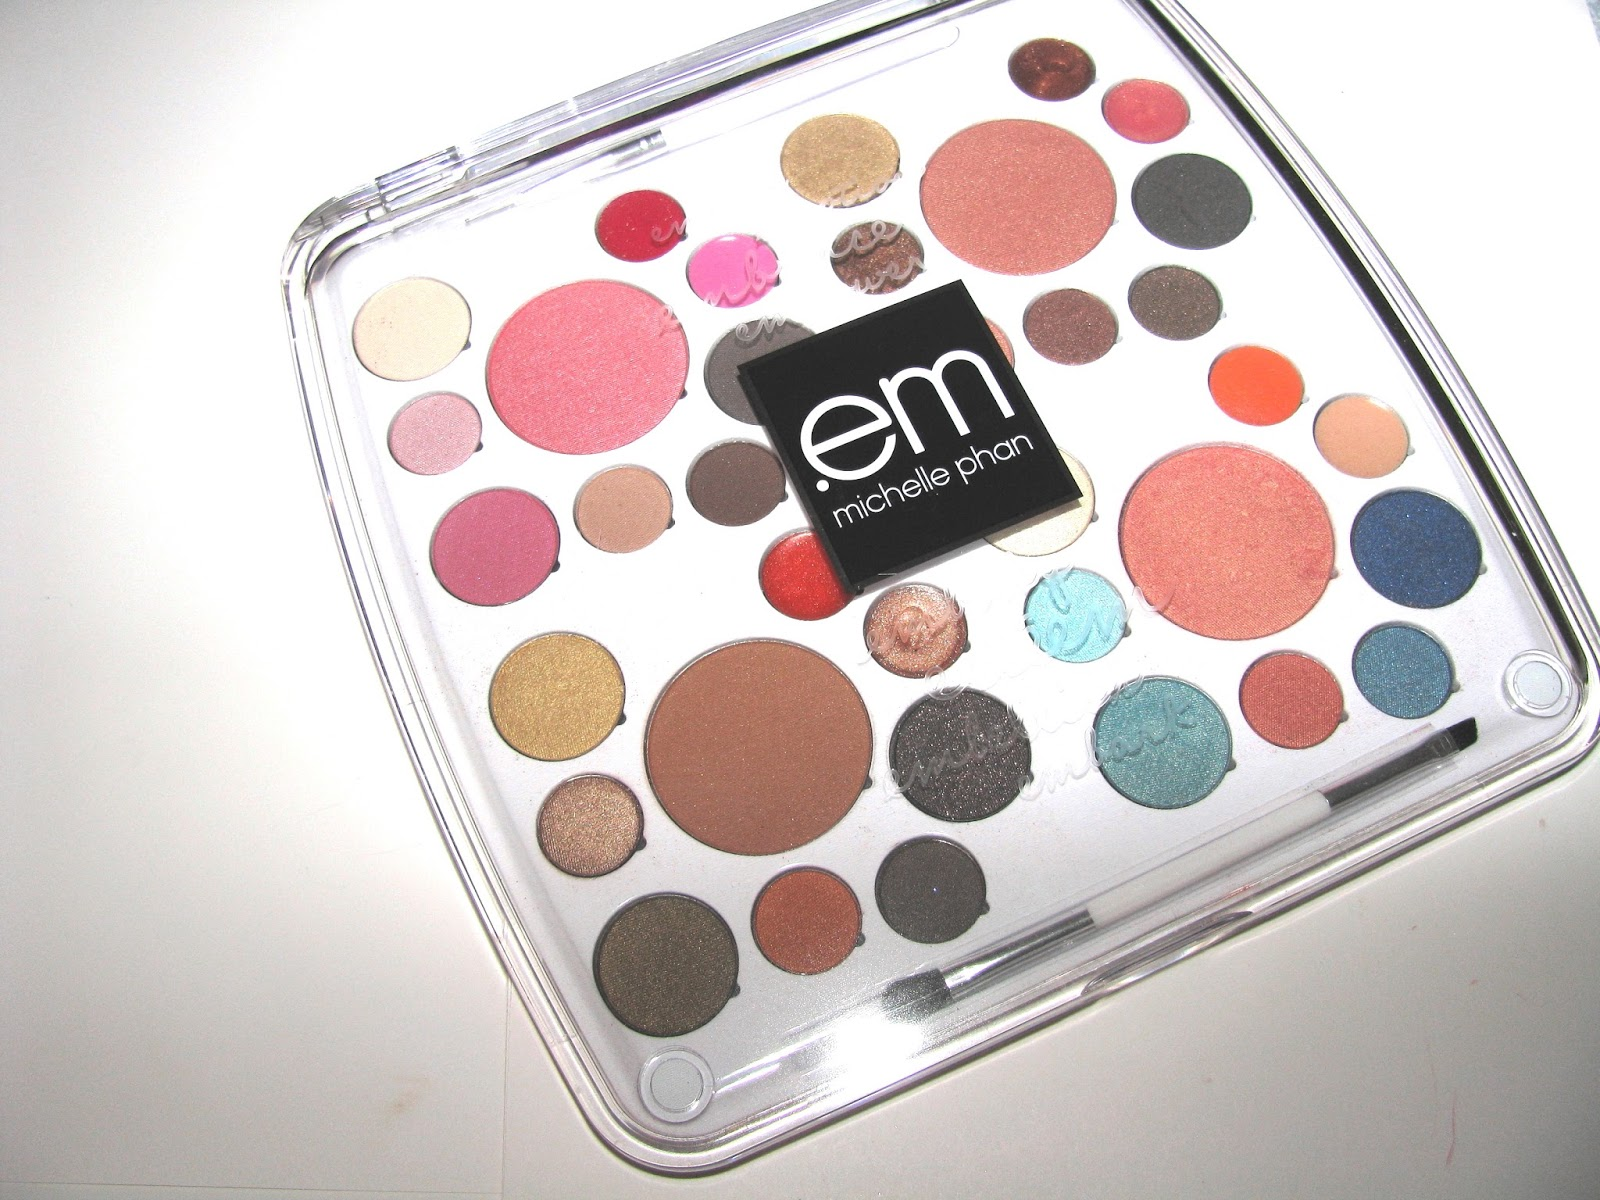 em michelle phan em michelle phan is a em michelle phan Travel Compact. by em michelle phan. $ $ 6 FREE Shipping on eligible orders. Whole Foods Market America's Healthiest Grocery Store: Withoutabox Submit to Film Festivals: Woot! Deals and Shenanigans: Zappos Shoes & Clothing.